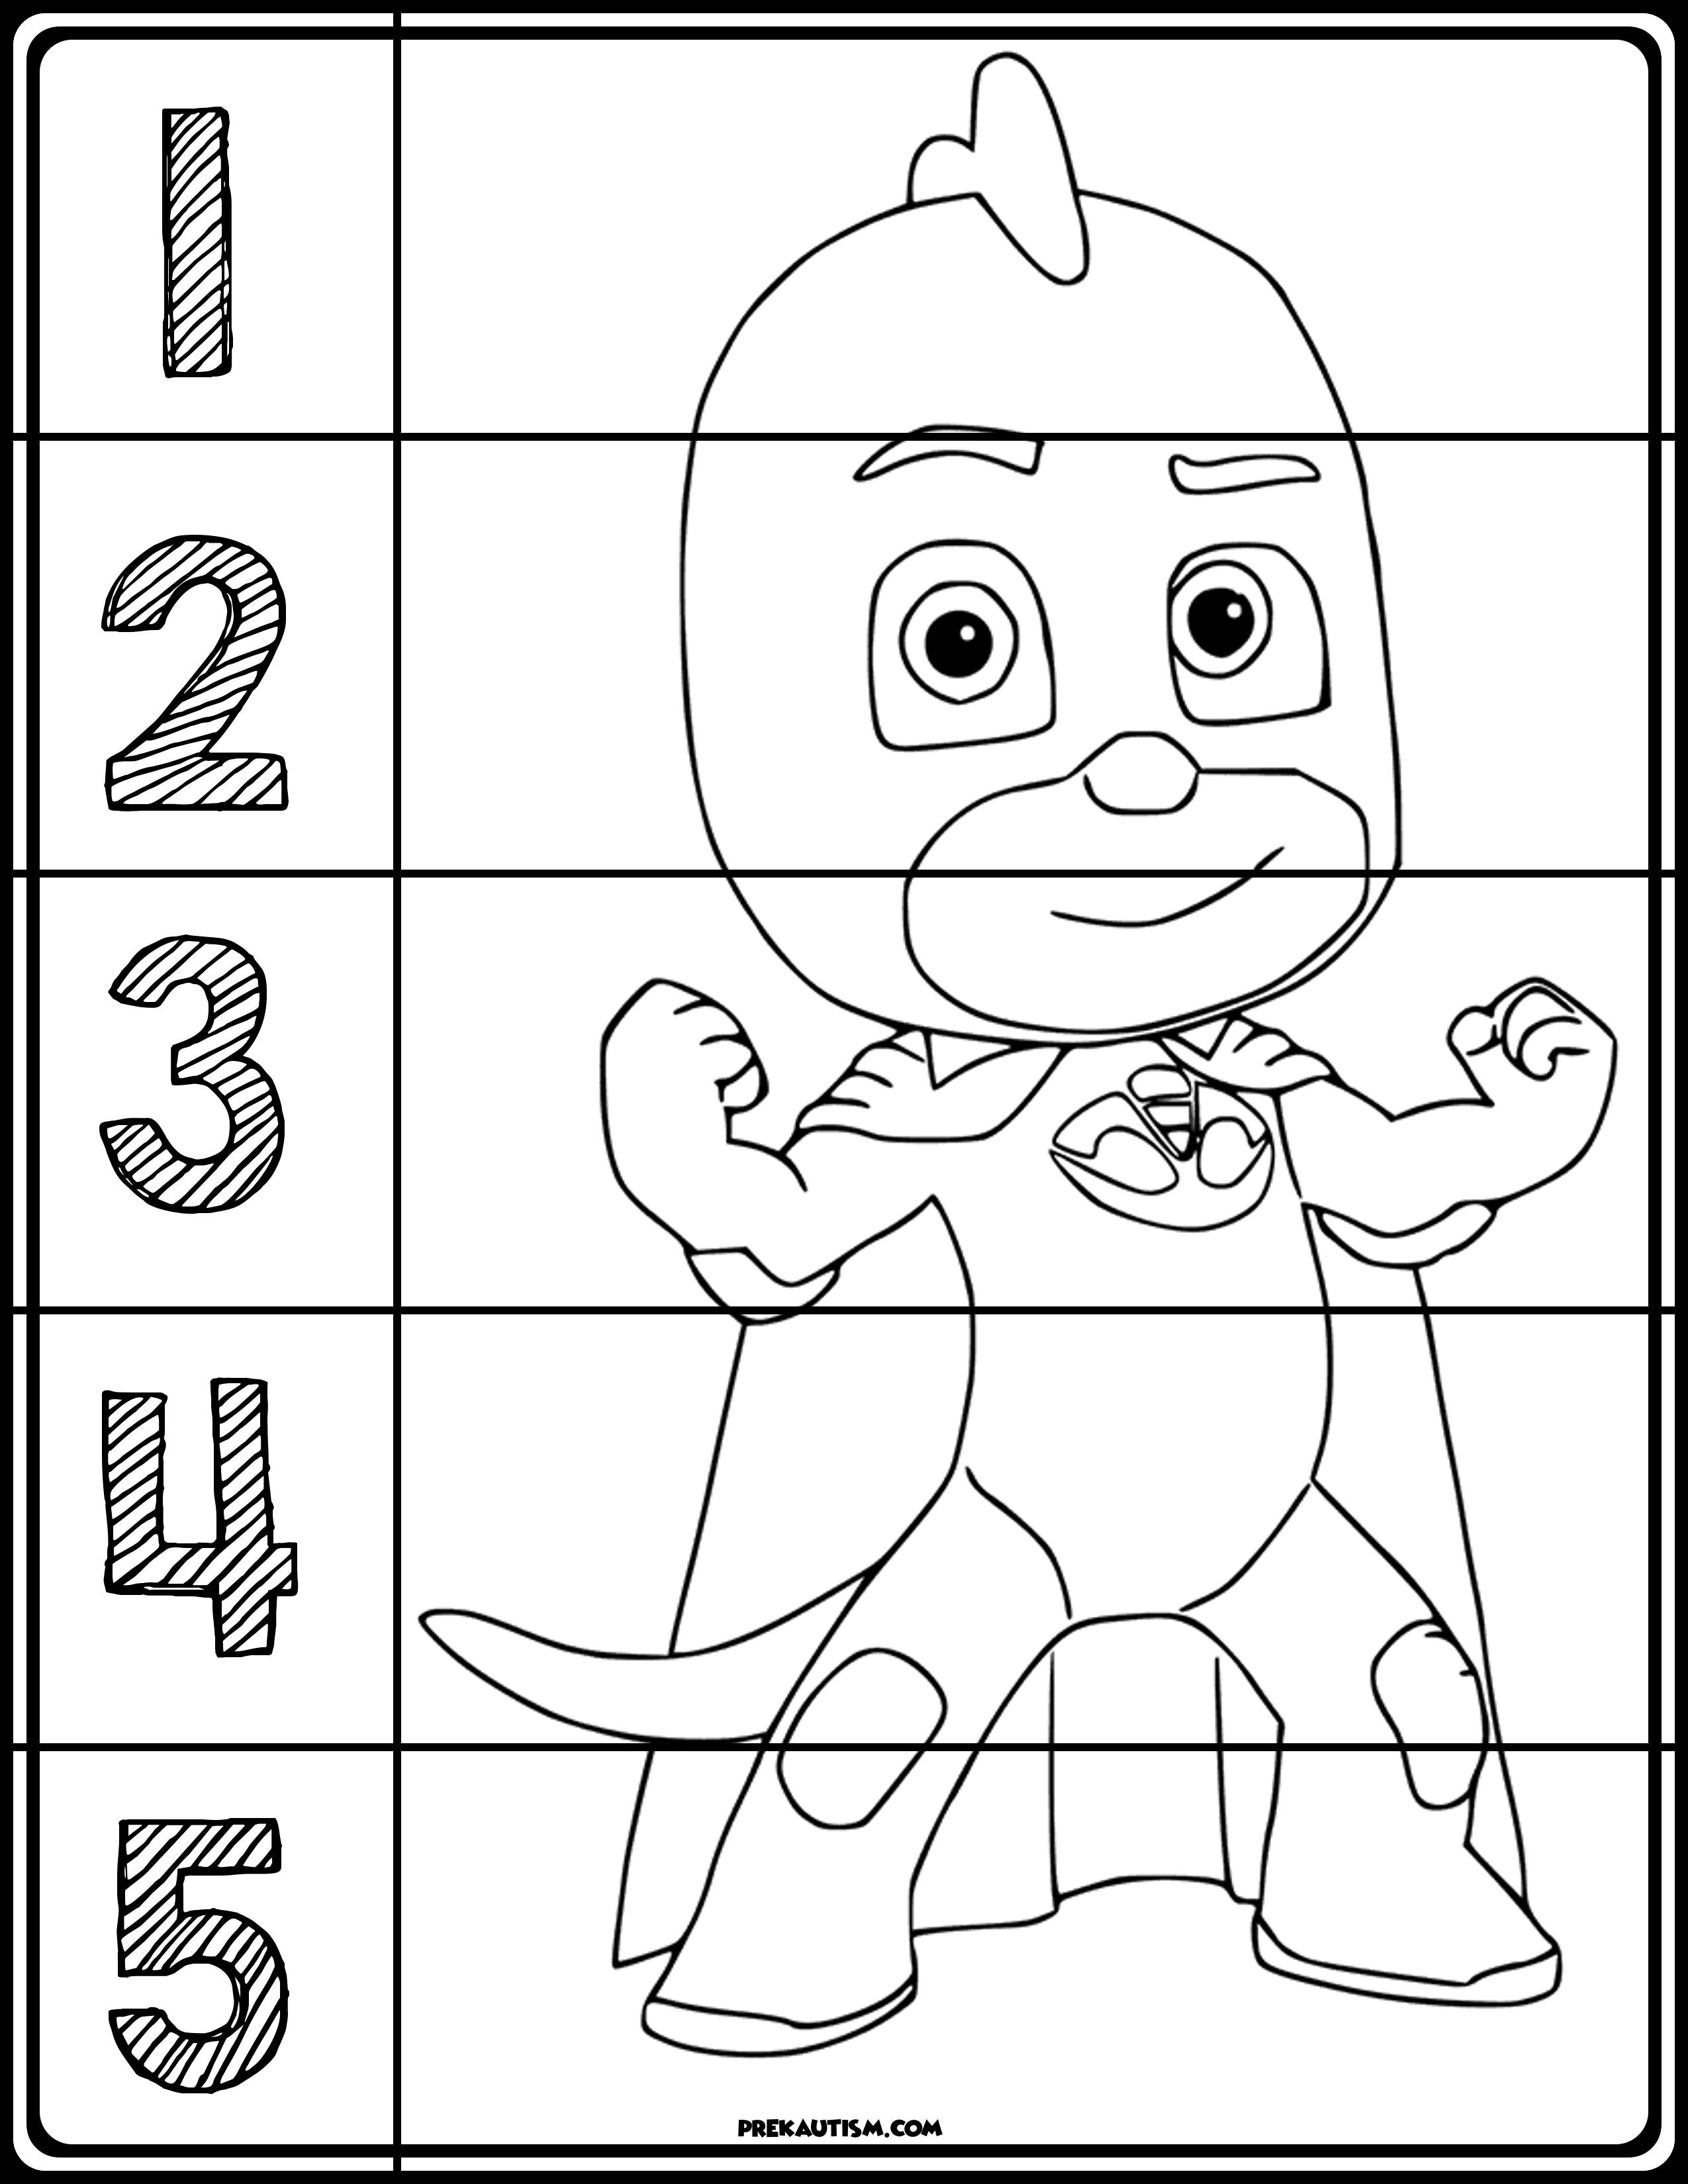 Pj Masks Coloring Number Puzzles | My Tpt Store | Pj Mask, Numbers - Printable Face Puzzle